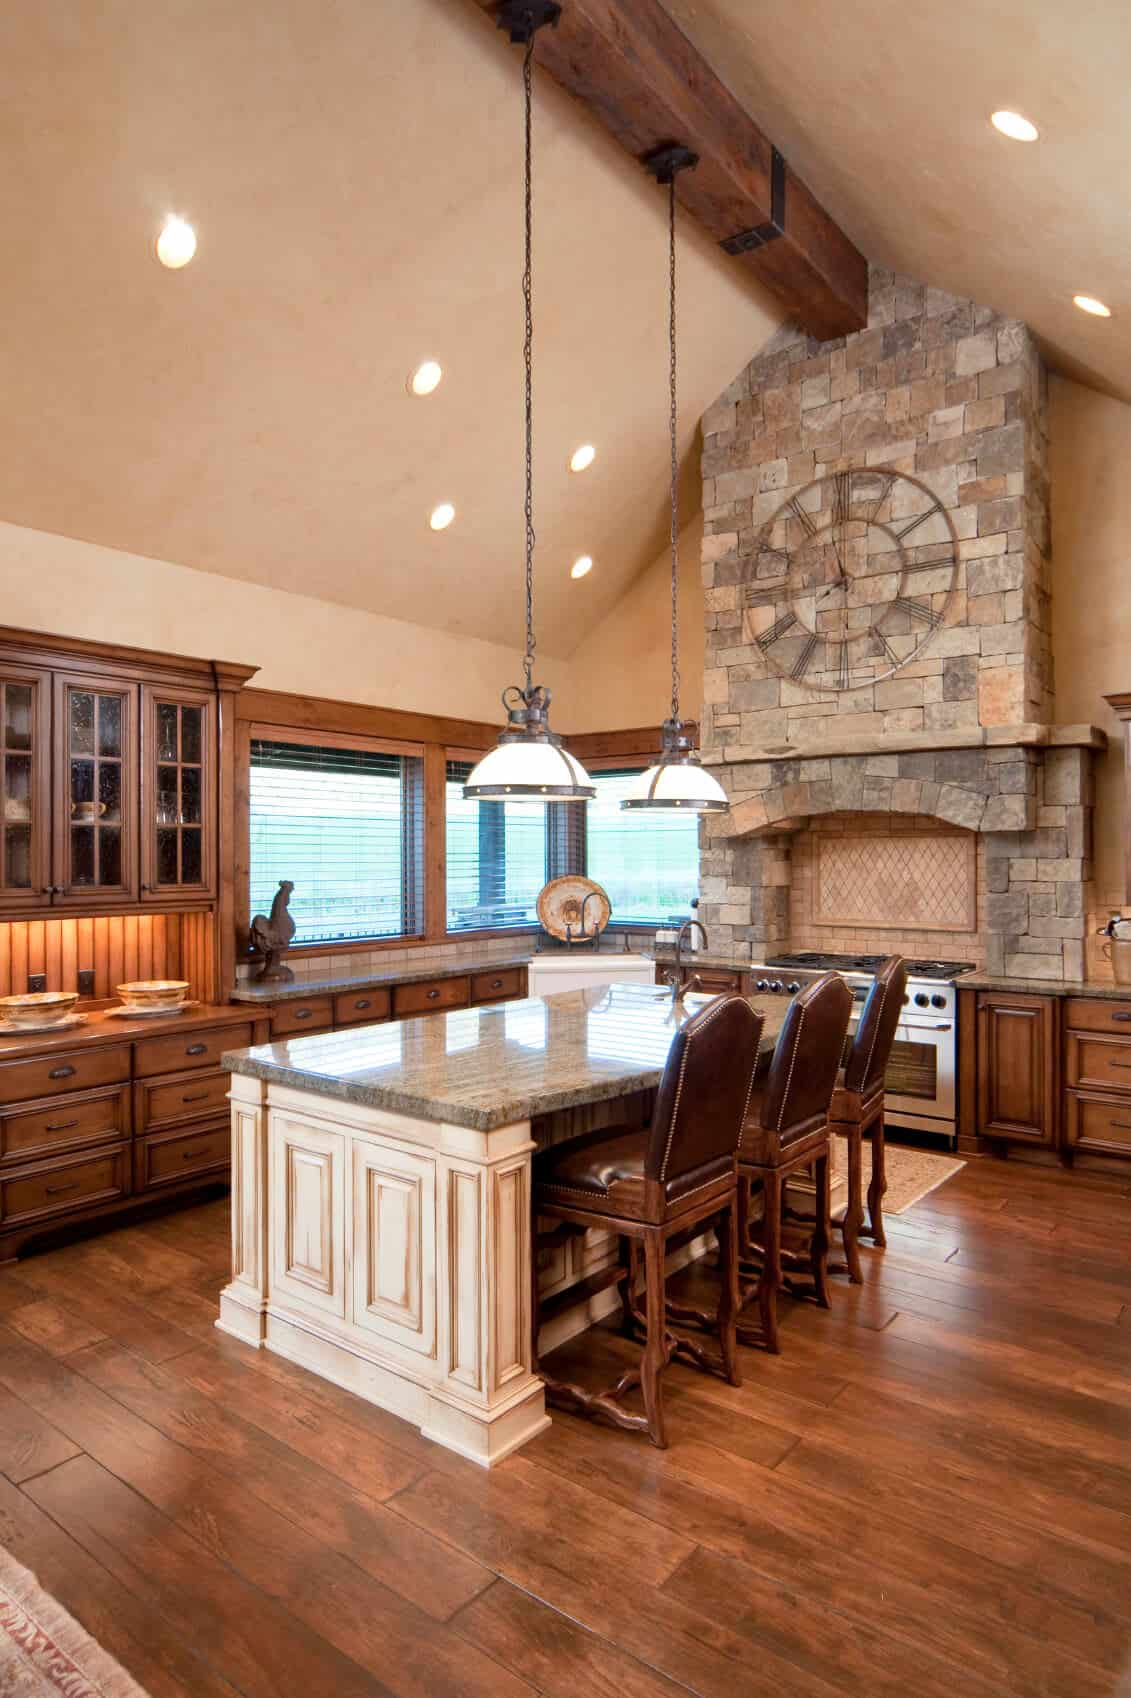 Large Country style kitchen with beam ceiling, pendant lighting and hardwood flooring.